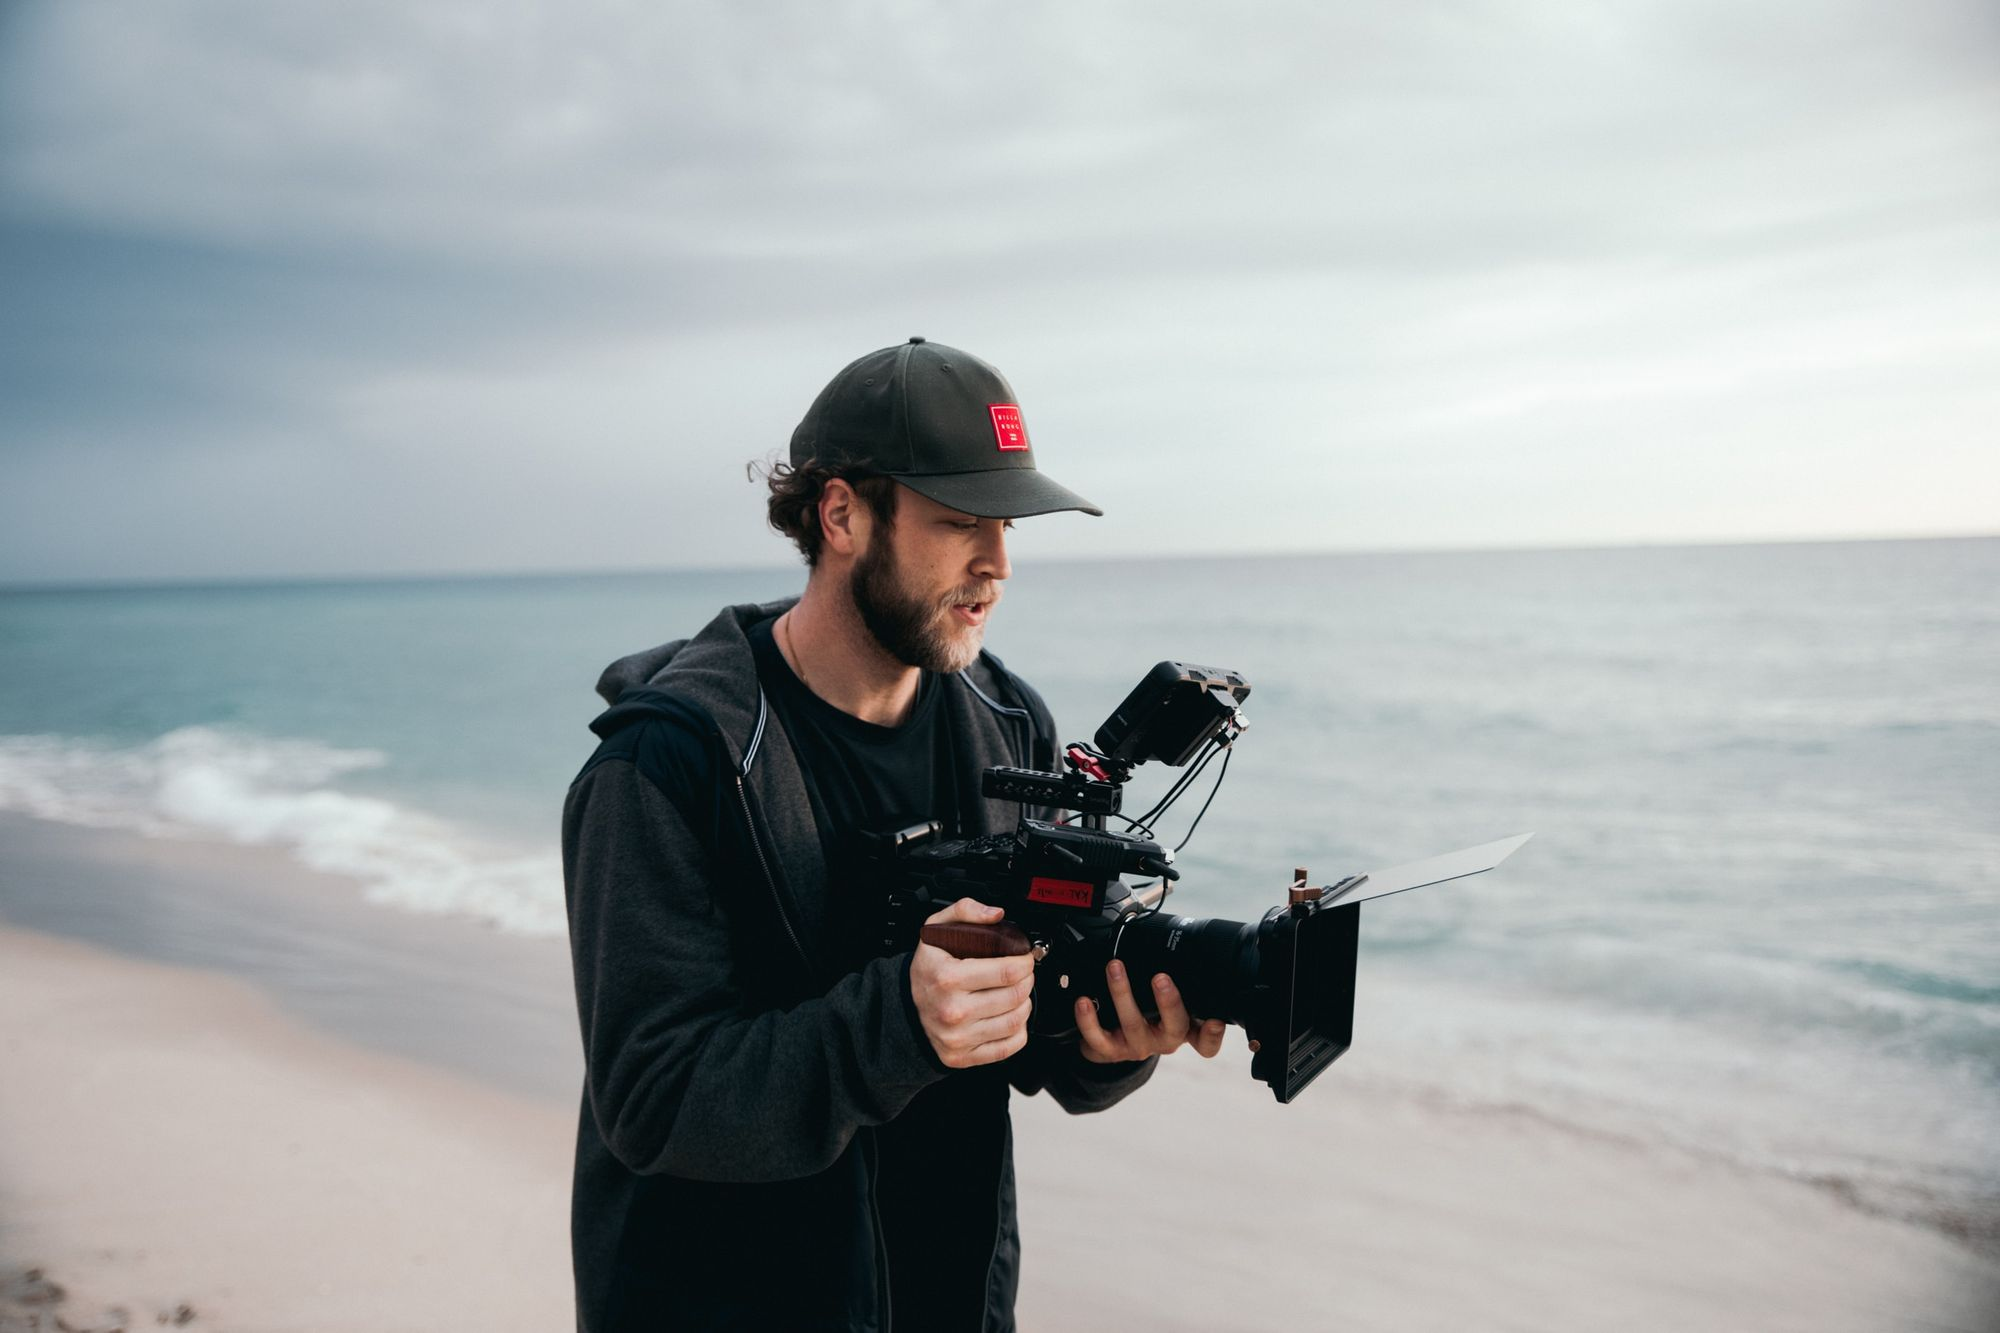 Director of Photography vs. Cinematographer: what's the difference